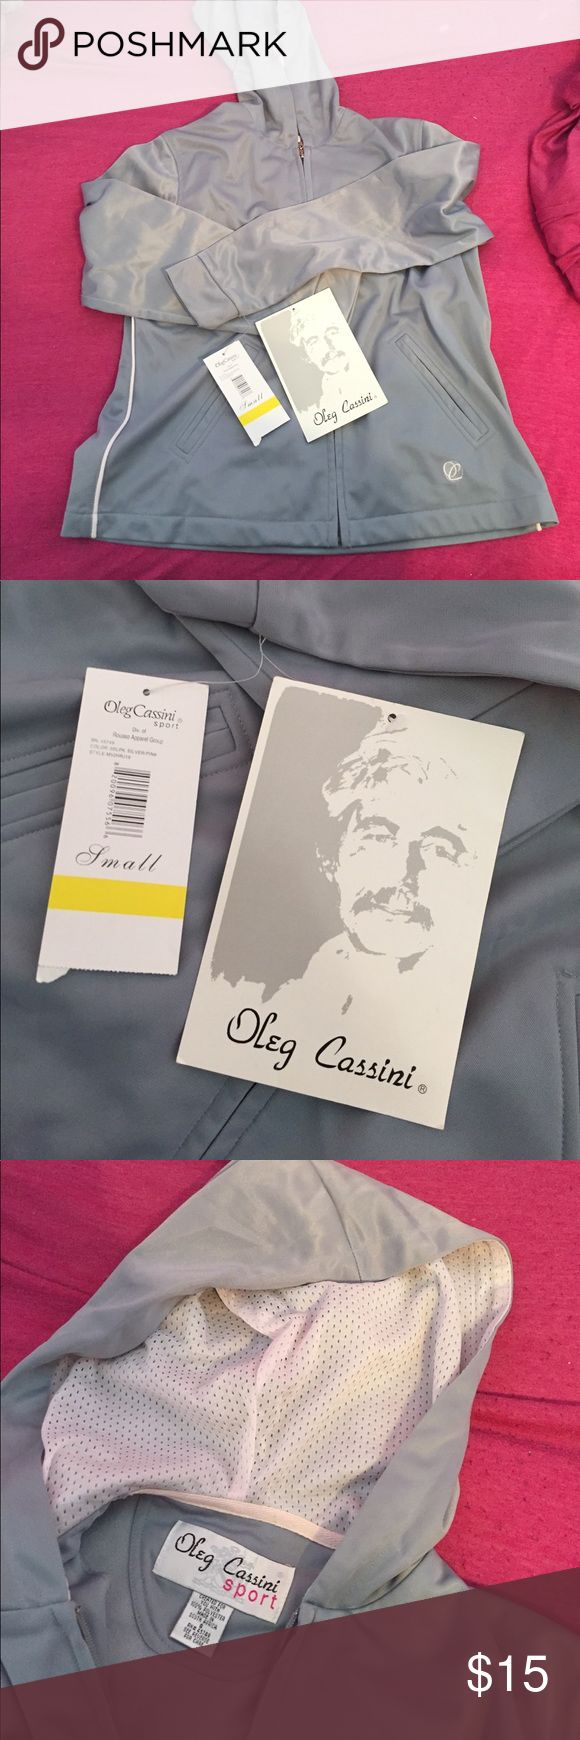 NWT Oleg Cassini track suit Brand new with tags, jacket and pants are both fleece lined, pants have zippers on bottom, in perfect condition! *ALL ITEMS IRONED PRIOR TO SHIPMENT!* Oleg Cassini Sport Other